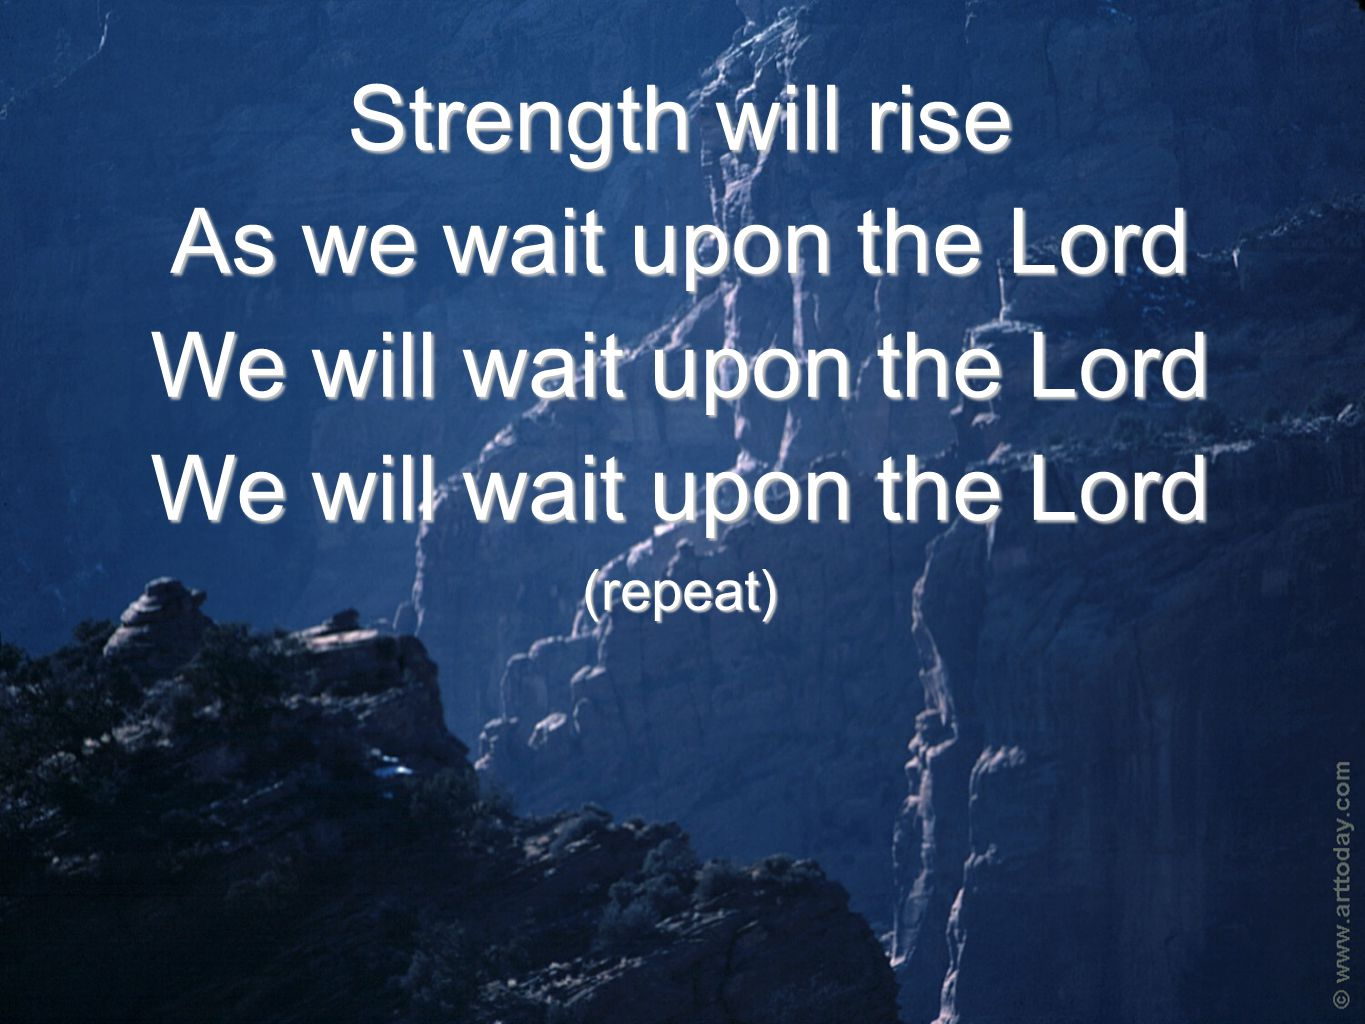 Strength will rise As we wait upon the Lord We will wait upon the Lord (repeat)